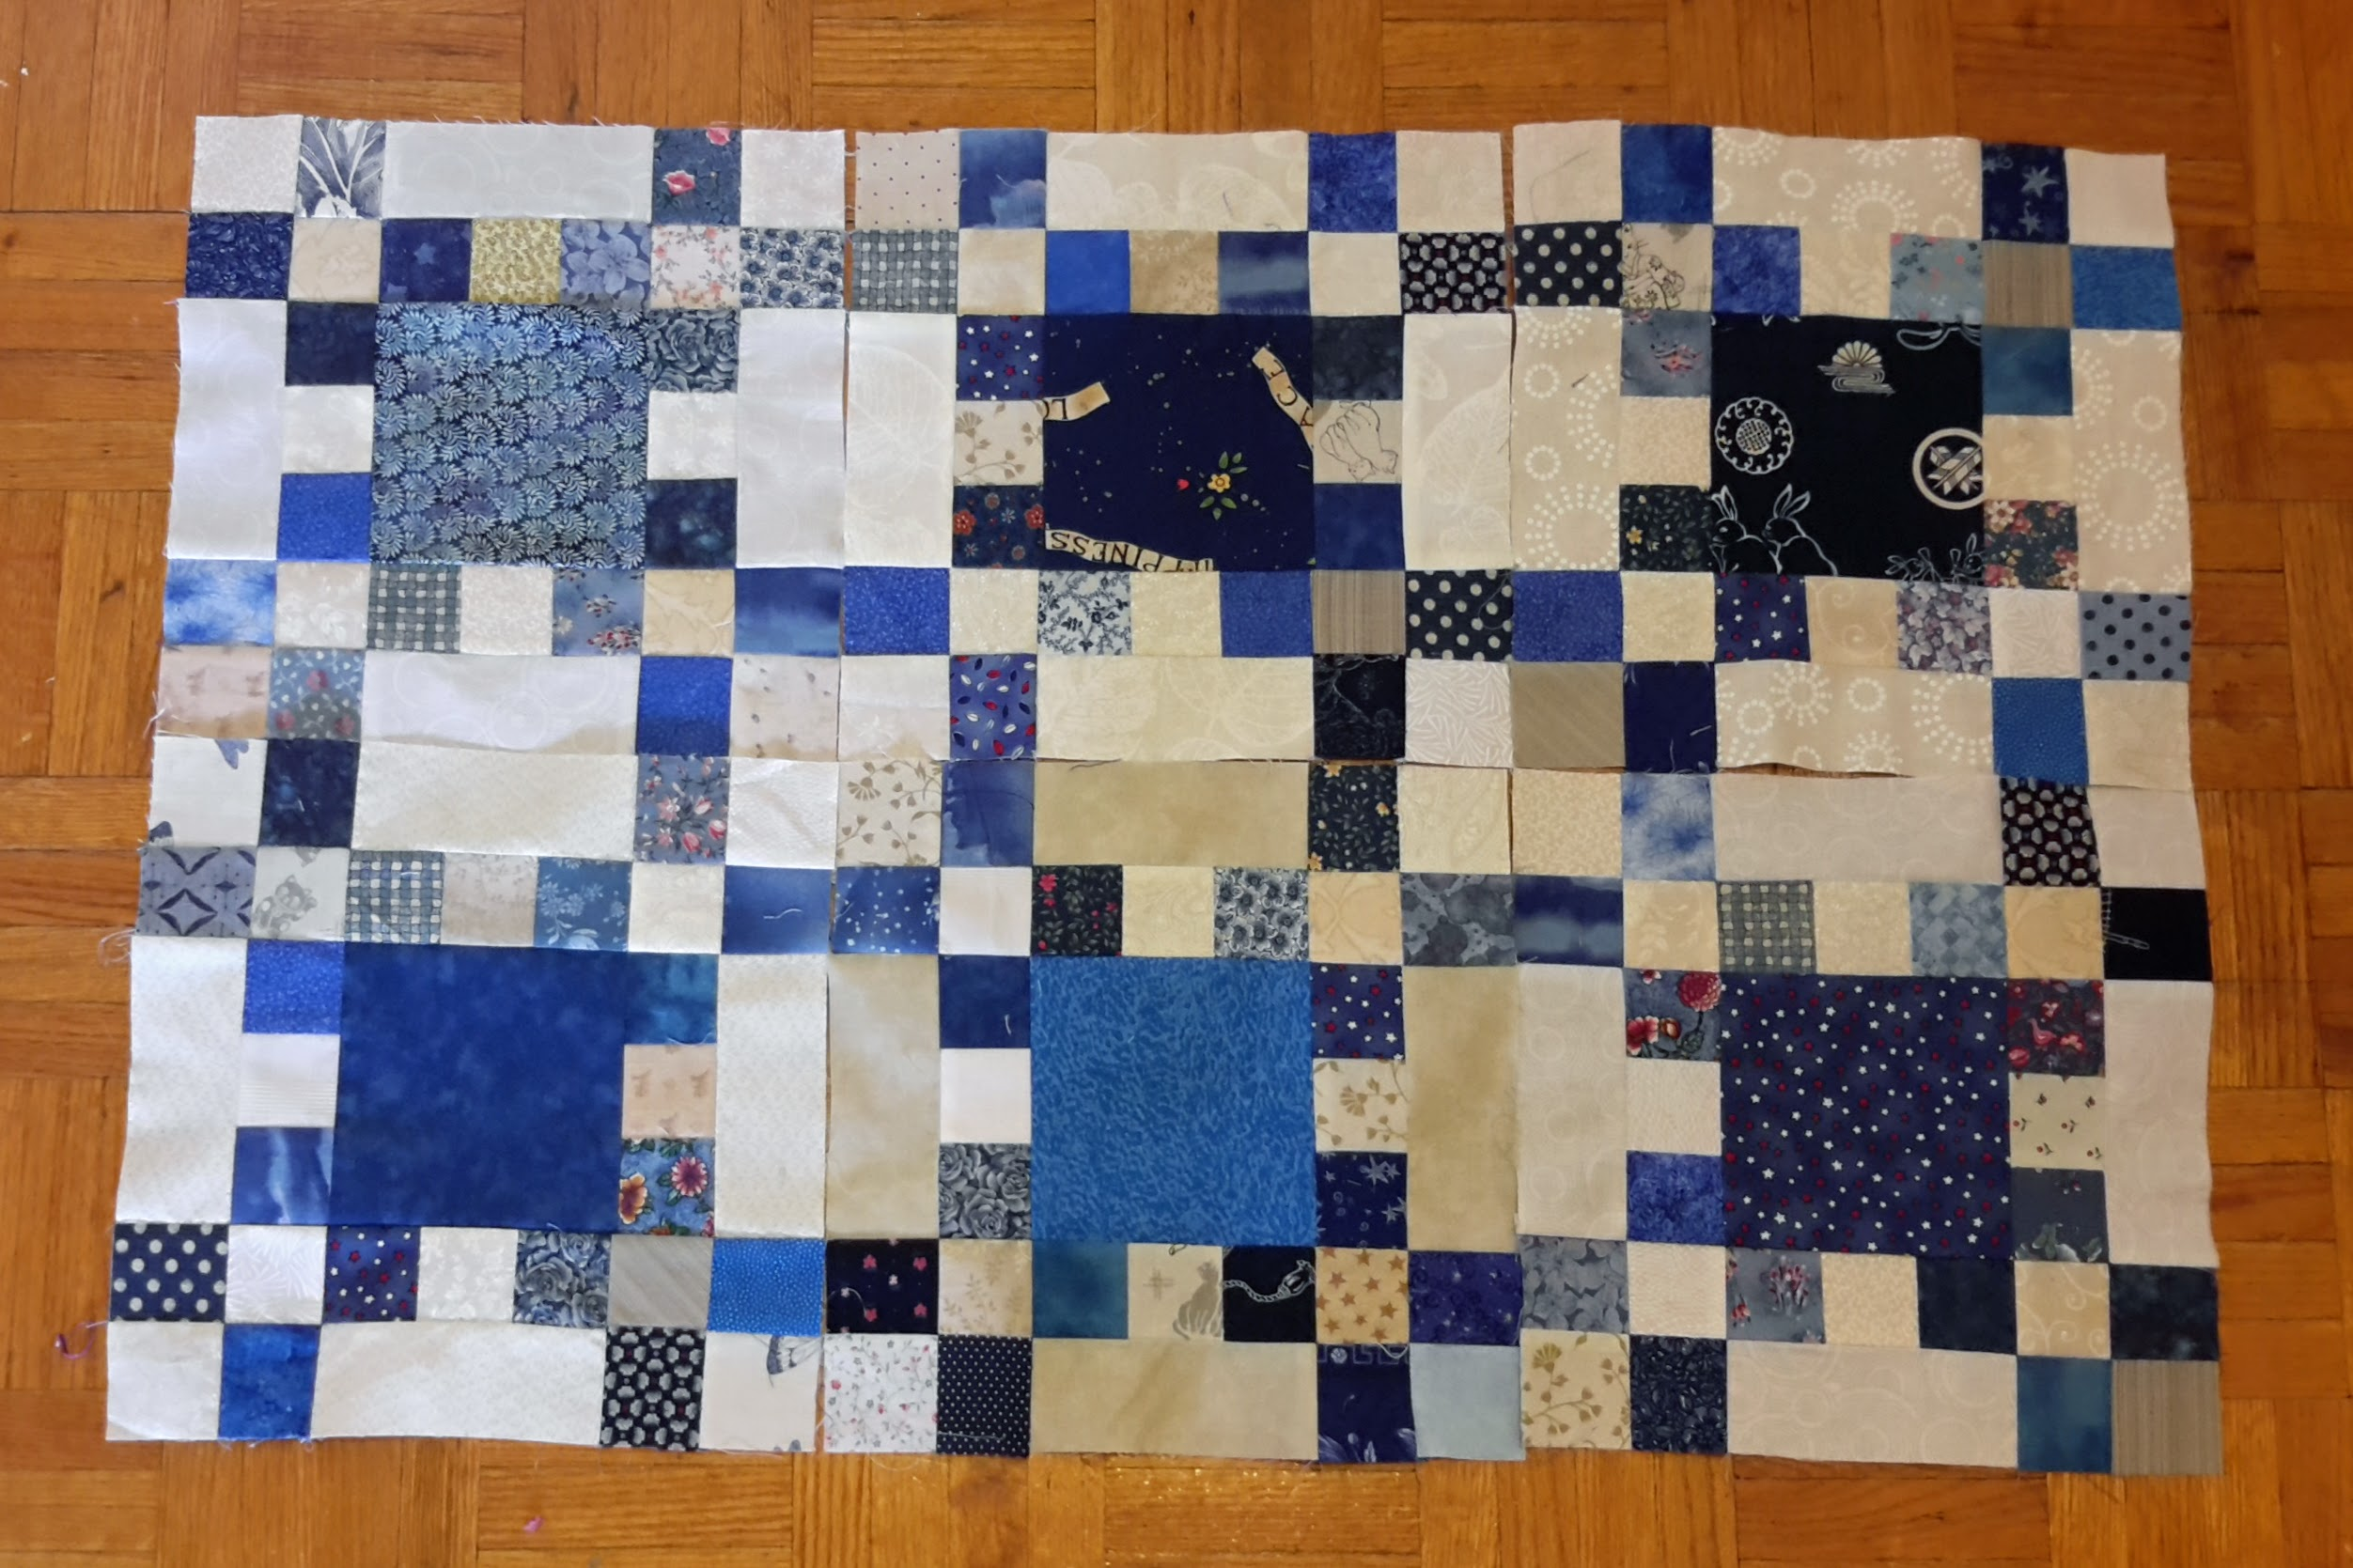 Growing – My Blue Idaho Square Dance Quilt